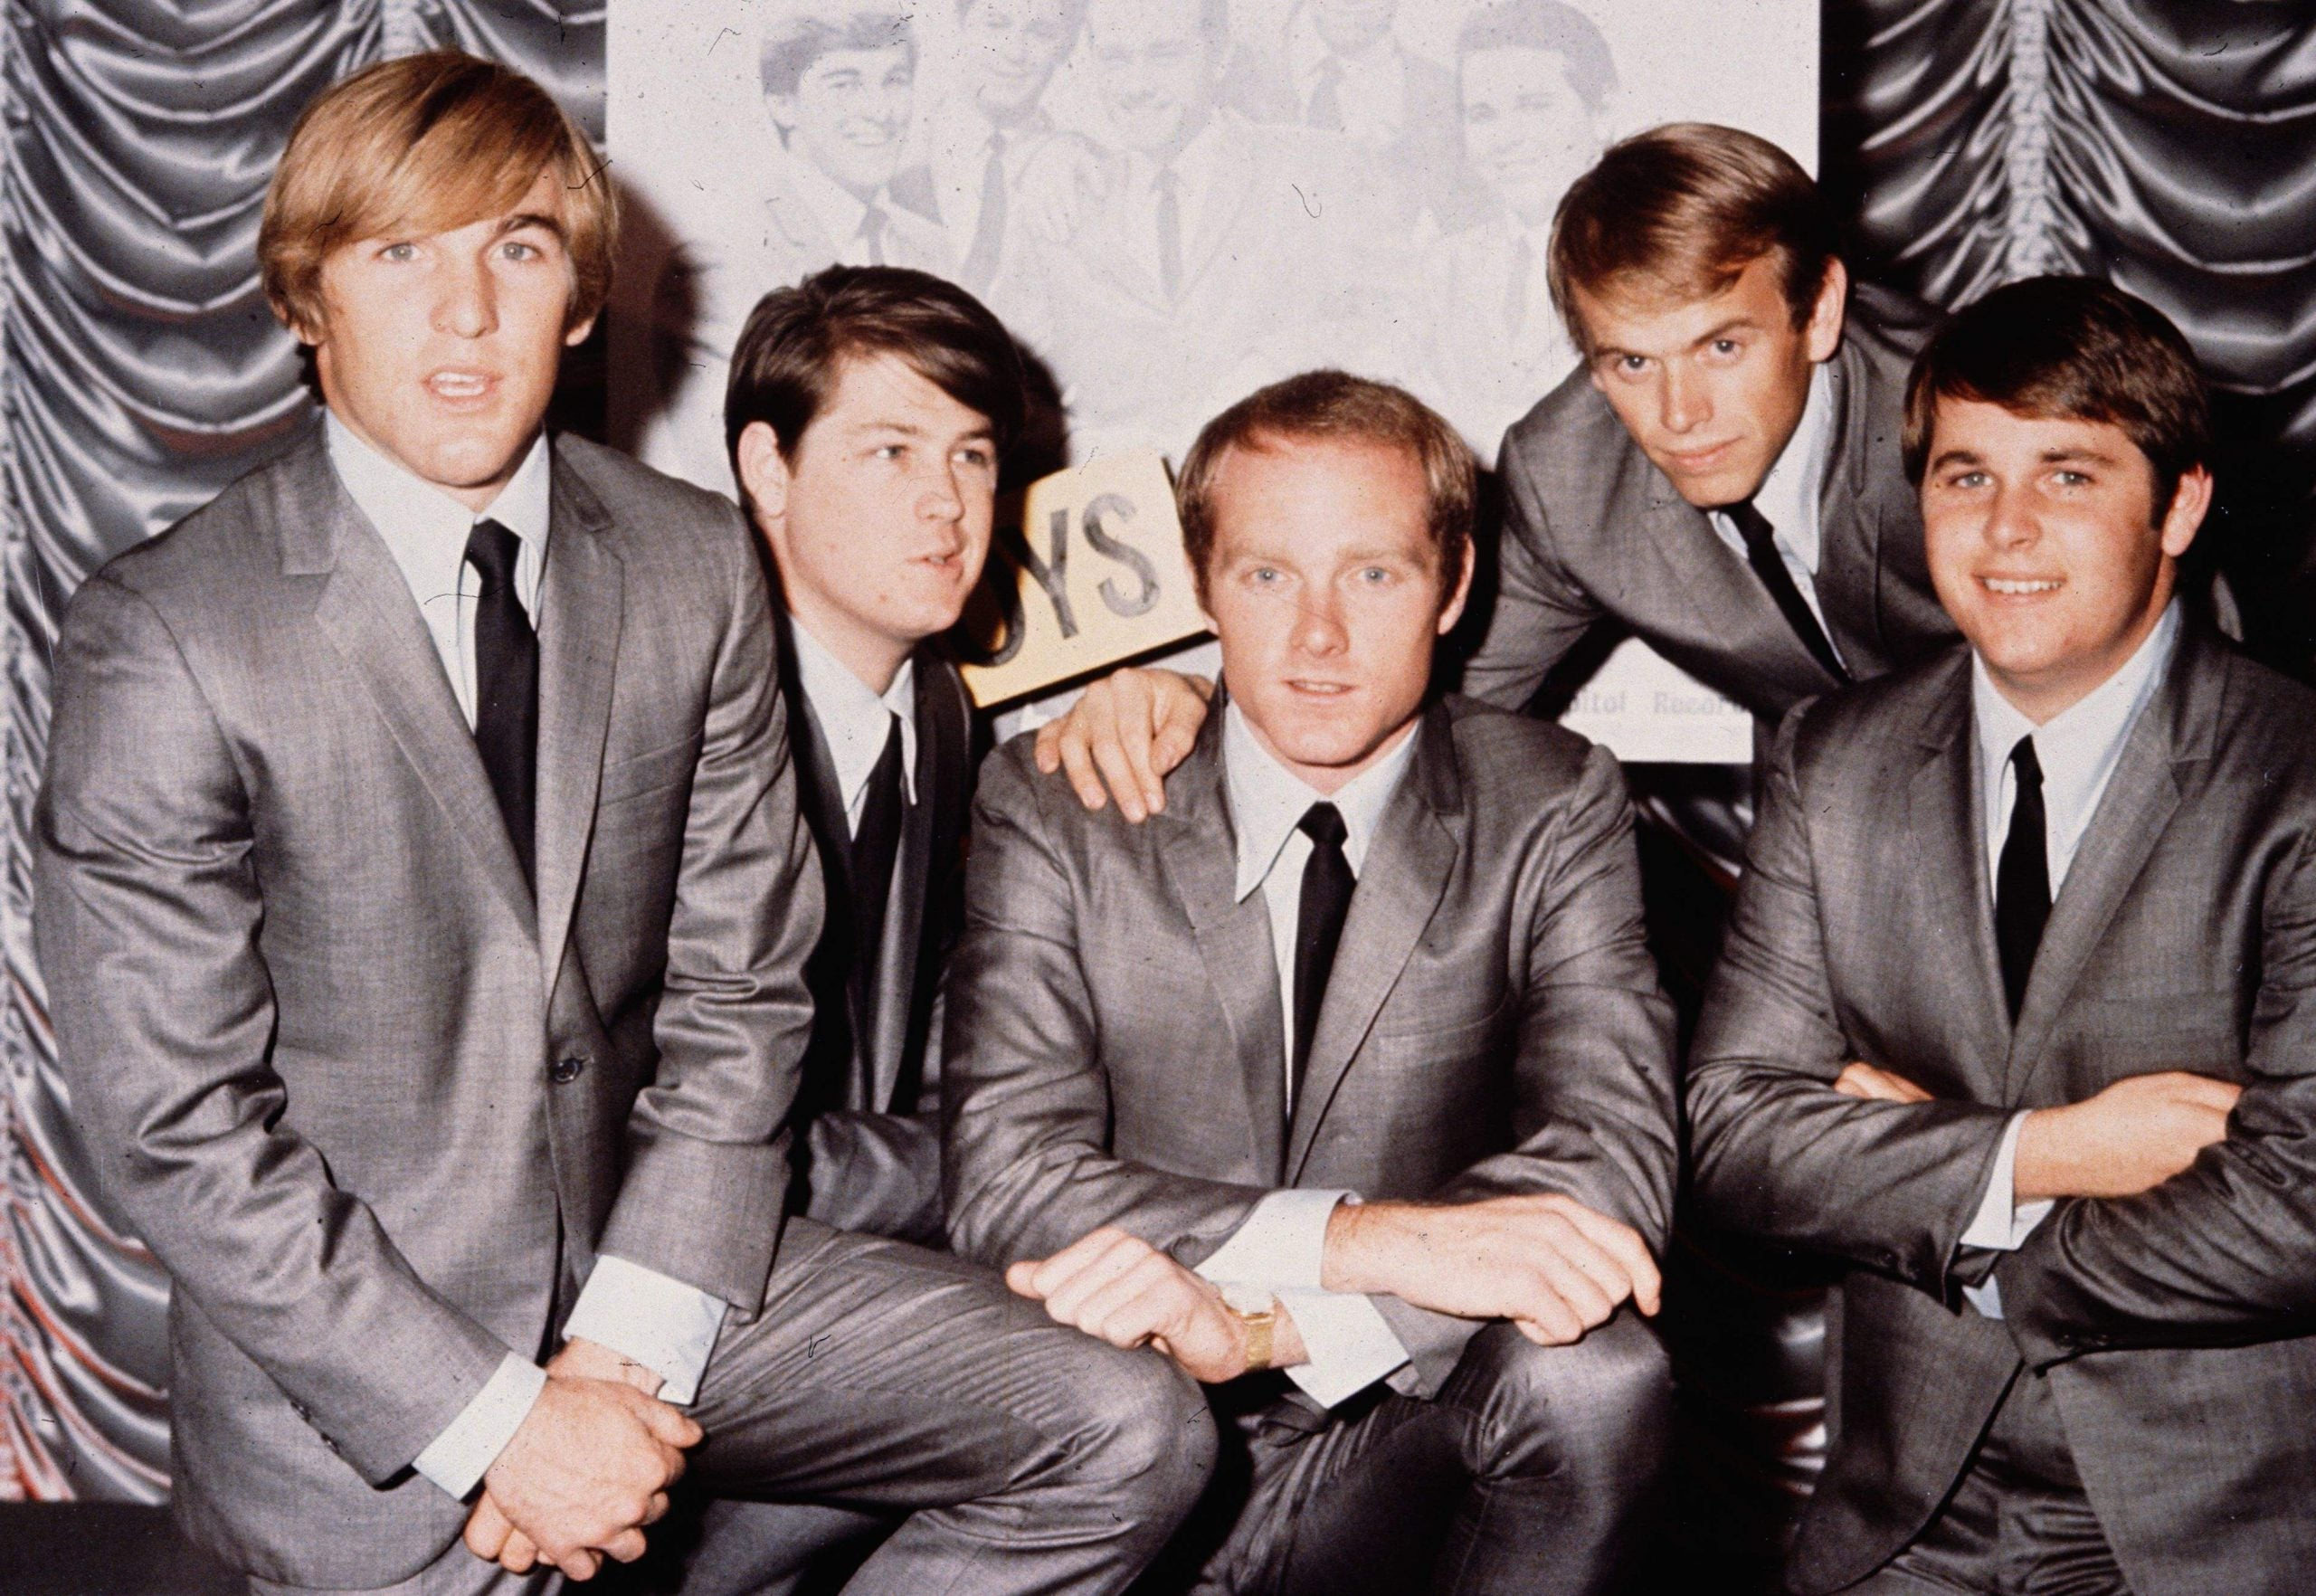 Why I want to tell the Beach Boys to get over themselves